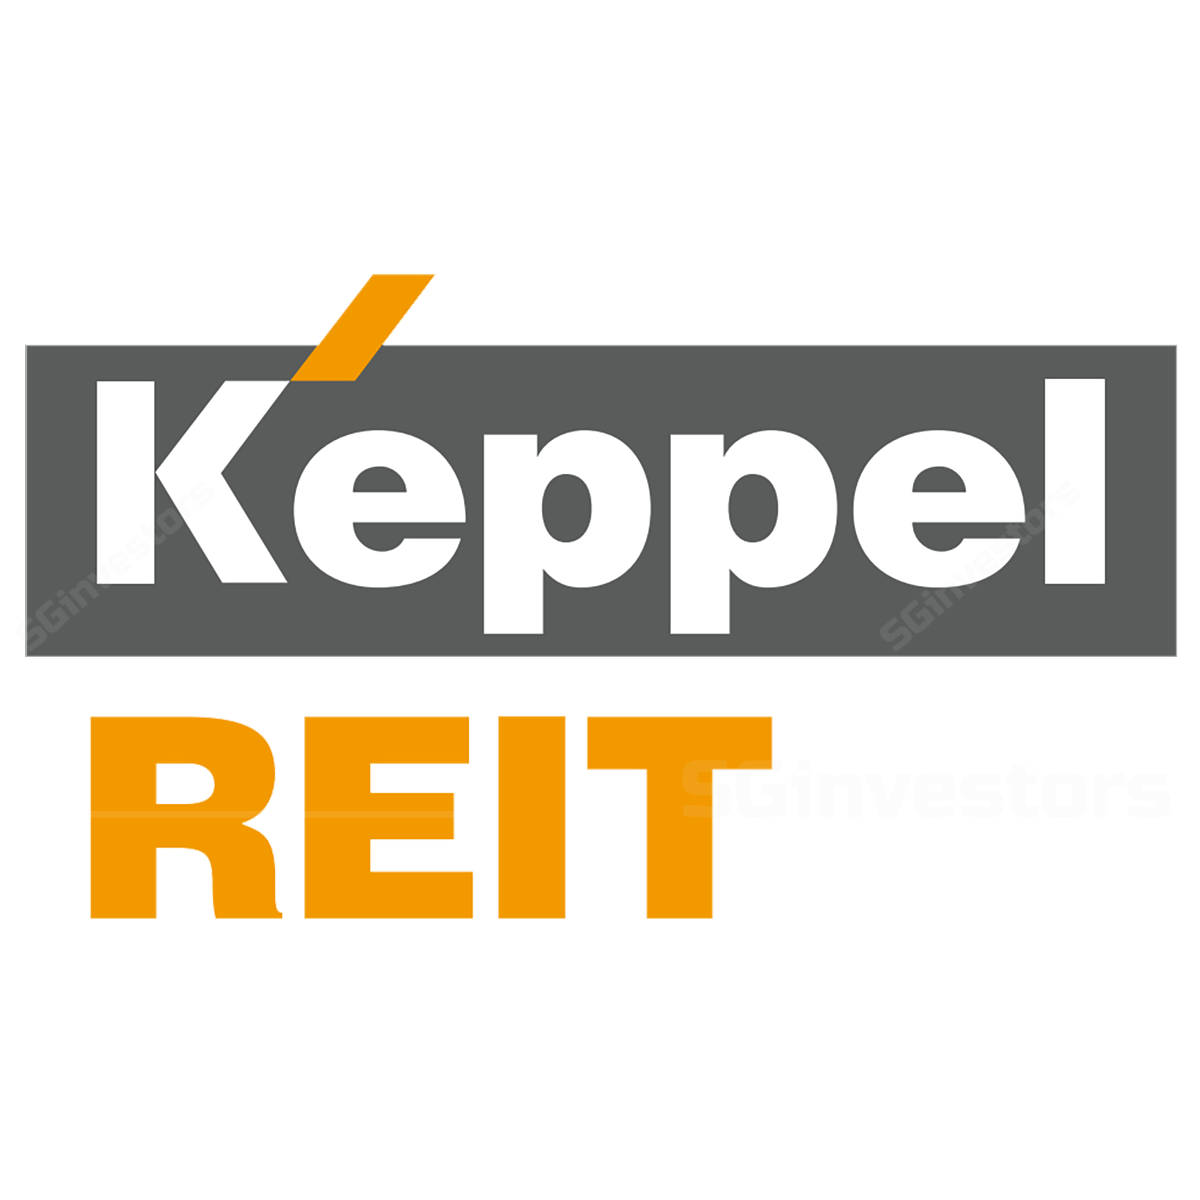 Keppel REIT (KREIT SP) - UOB Kay Hian 2017-07-19: 2Q17 Lower-than-expected Results Tempered By Sector Potential